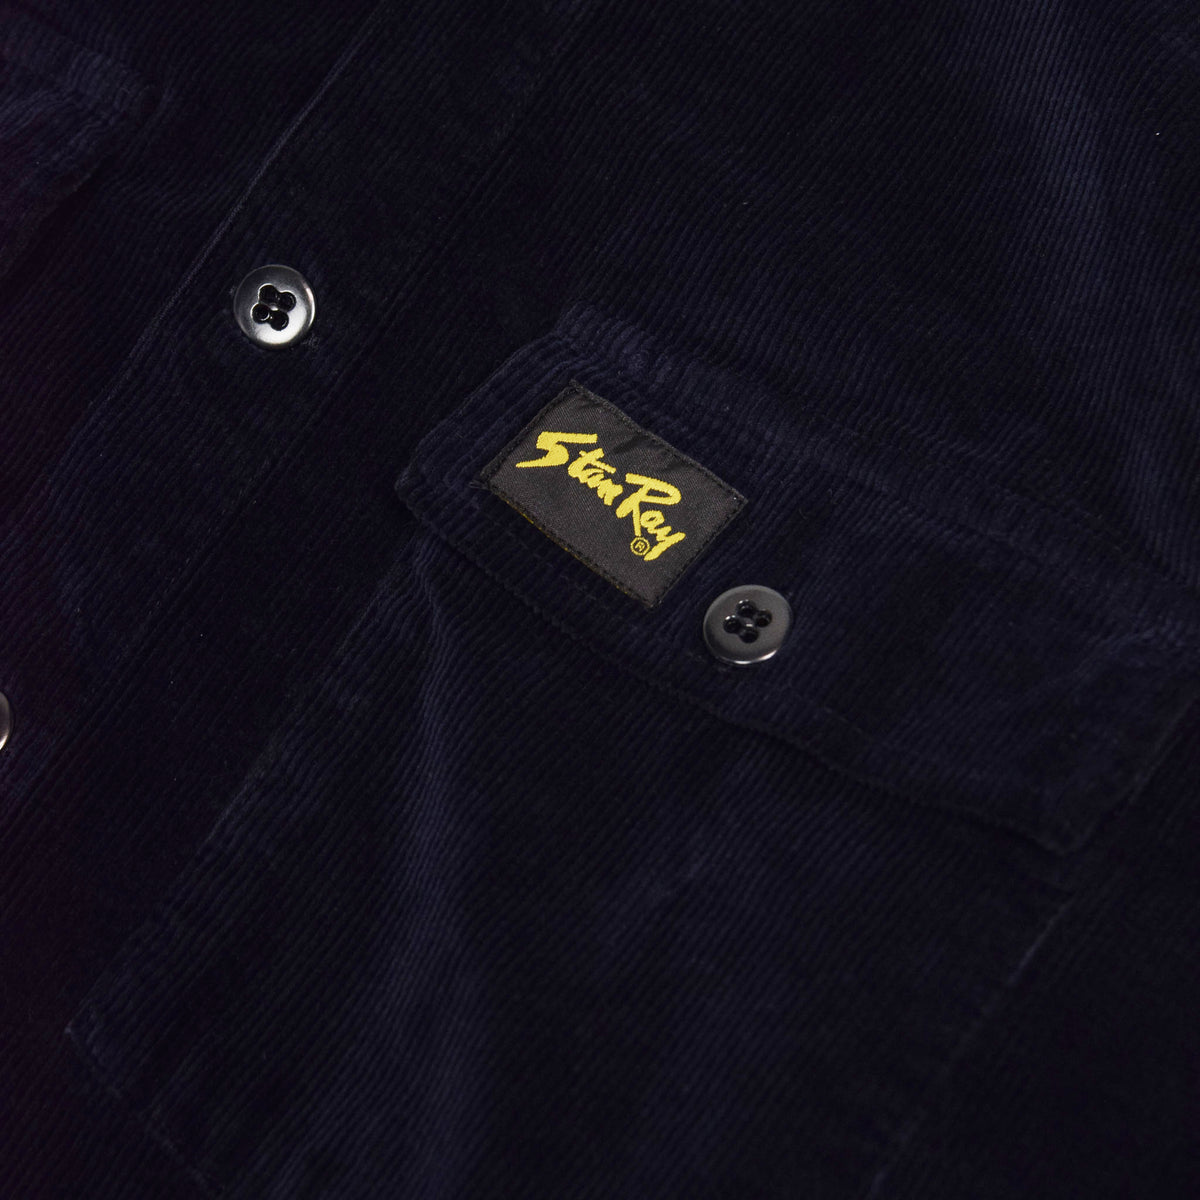 Stan Ray Navy Cord CPO Shirt chest pocket